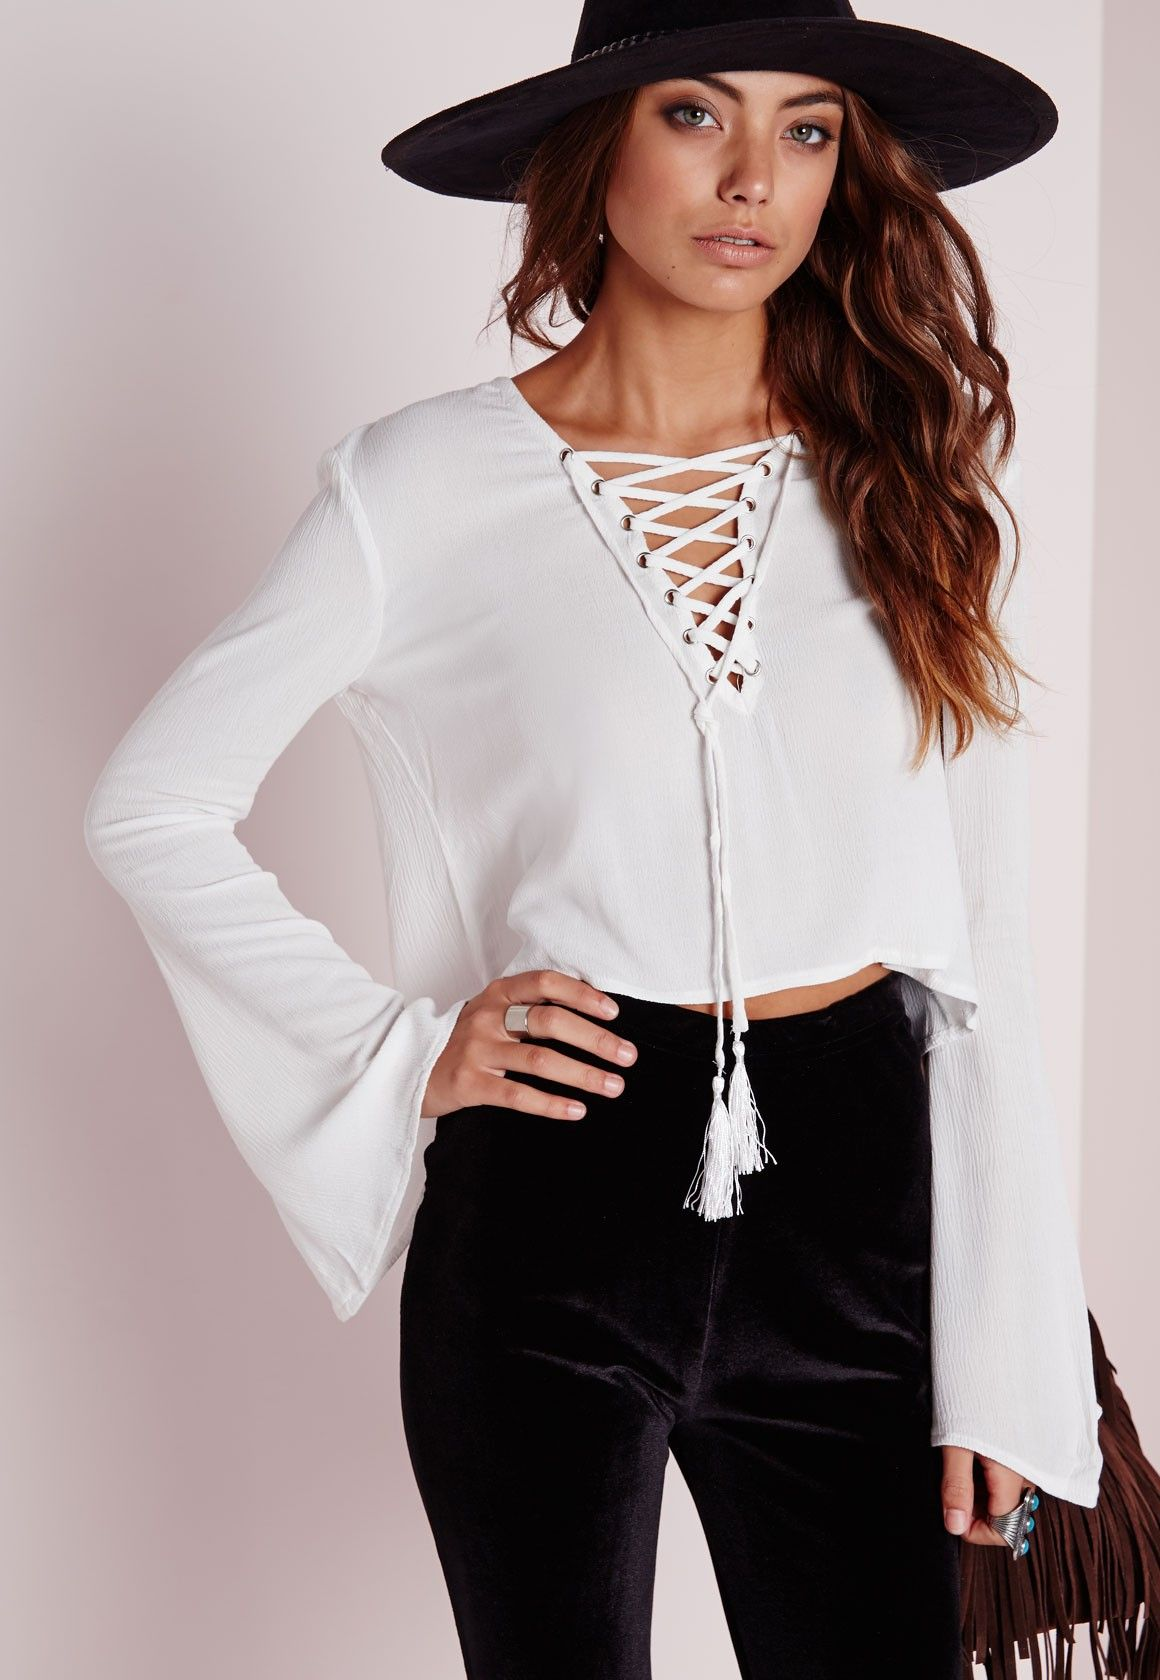 e94160b59384fa Bell Sleeve Tie Up Blouse White - Bell - Sleeve - Tops - Missguided ...